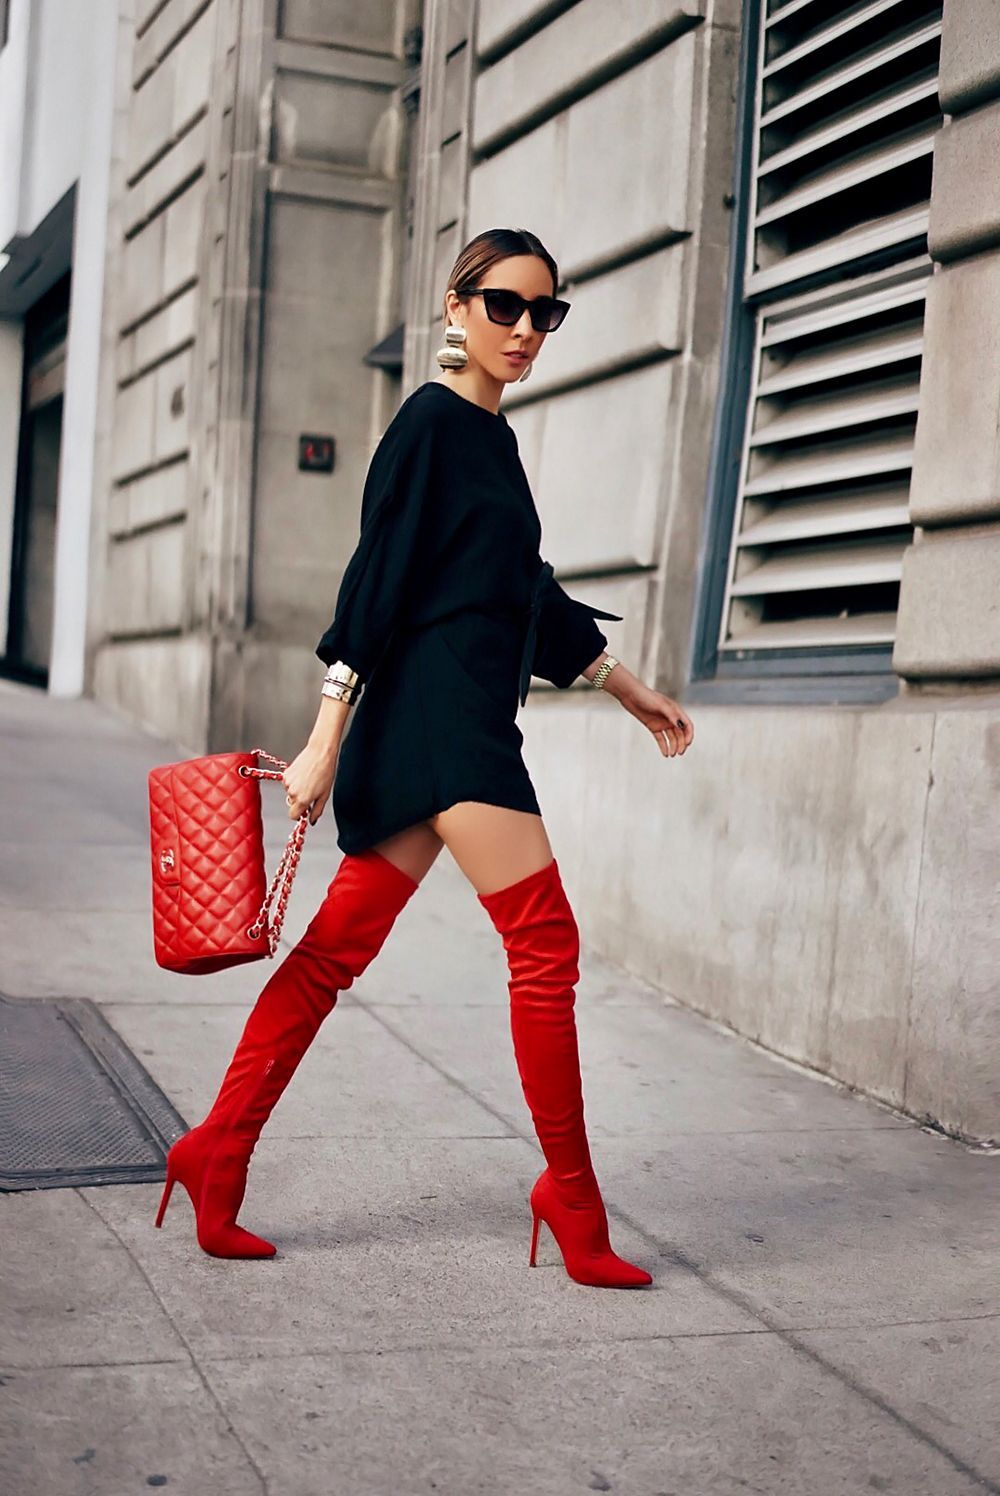 How To Wear Red Thigh High Boots This Fall Hot High Heels